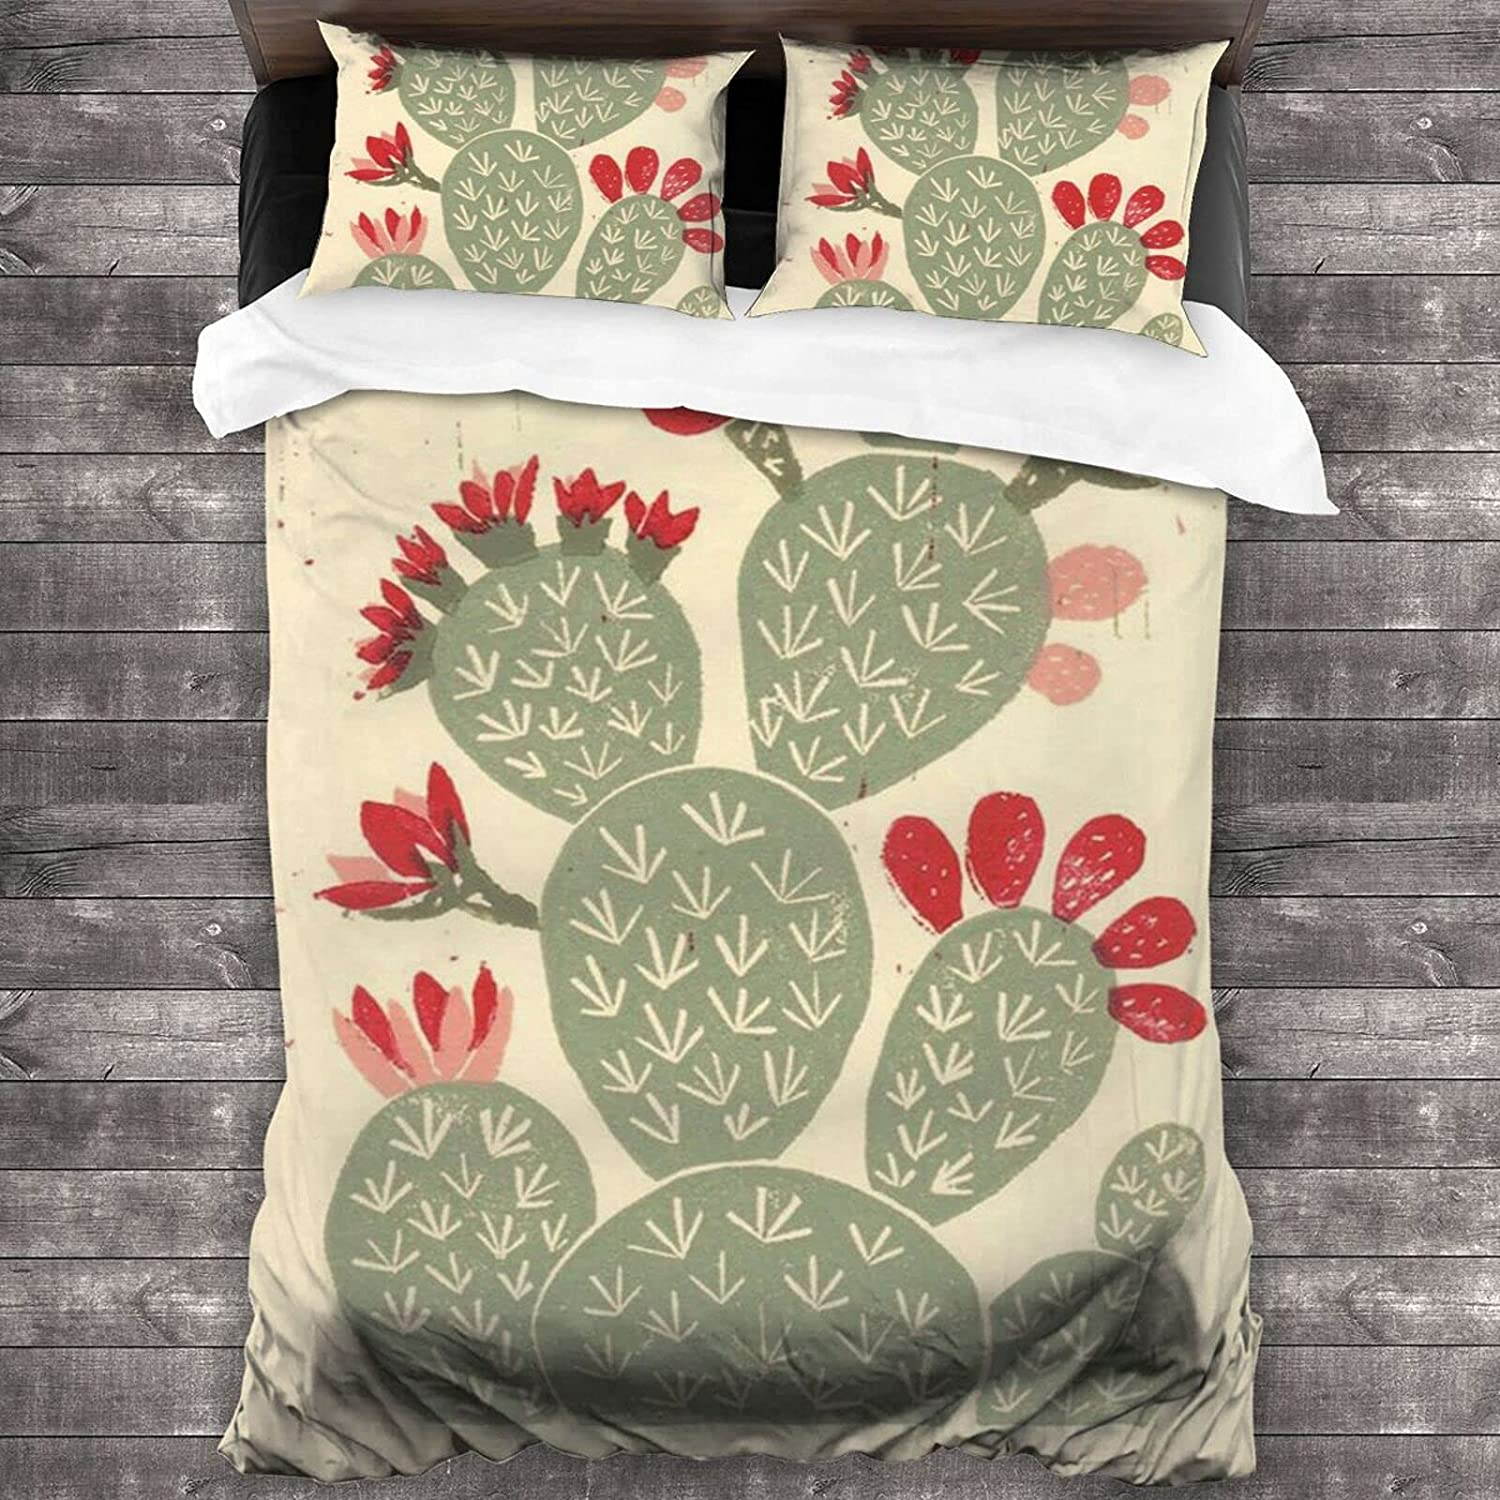 3 70% Special price for a limited time OFF Outlet Piece Bedding Set-Vintage Cactus fo Pattern Sets Style